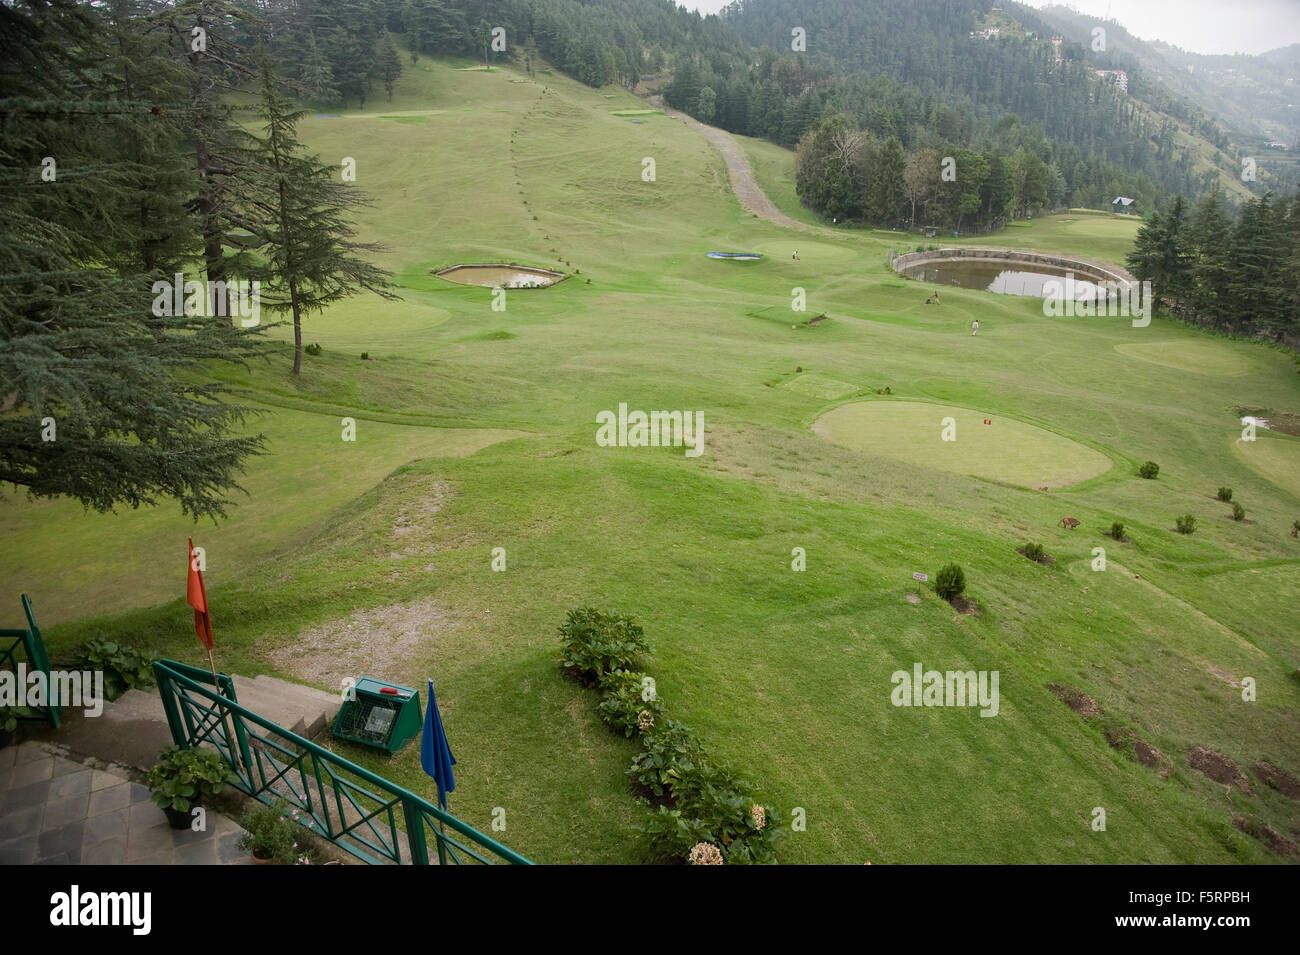 18 holes golf club, shimla, himachal pradesh, india, asia - Stock Image